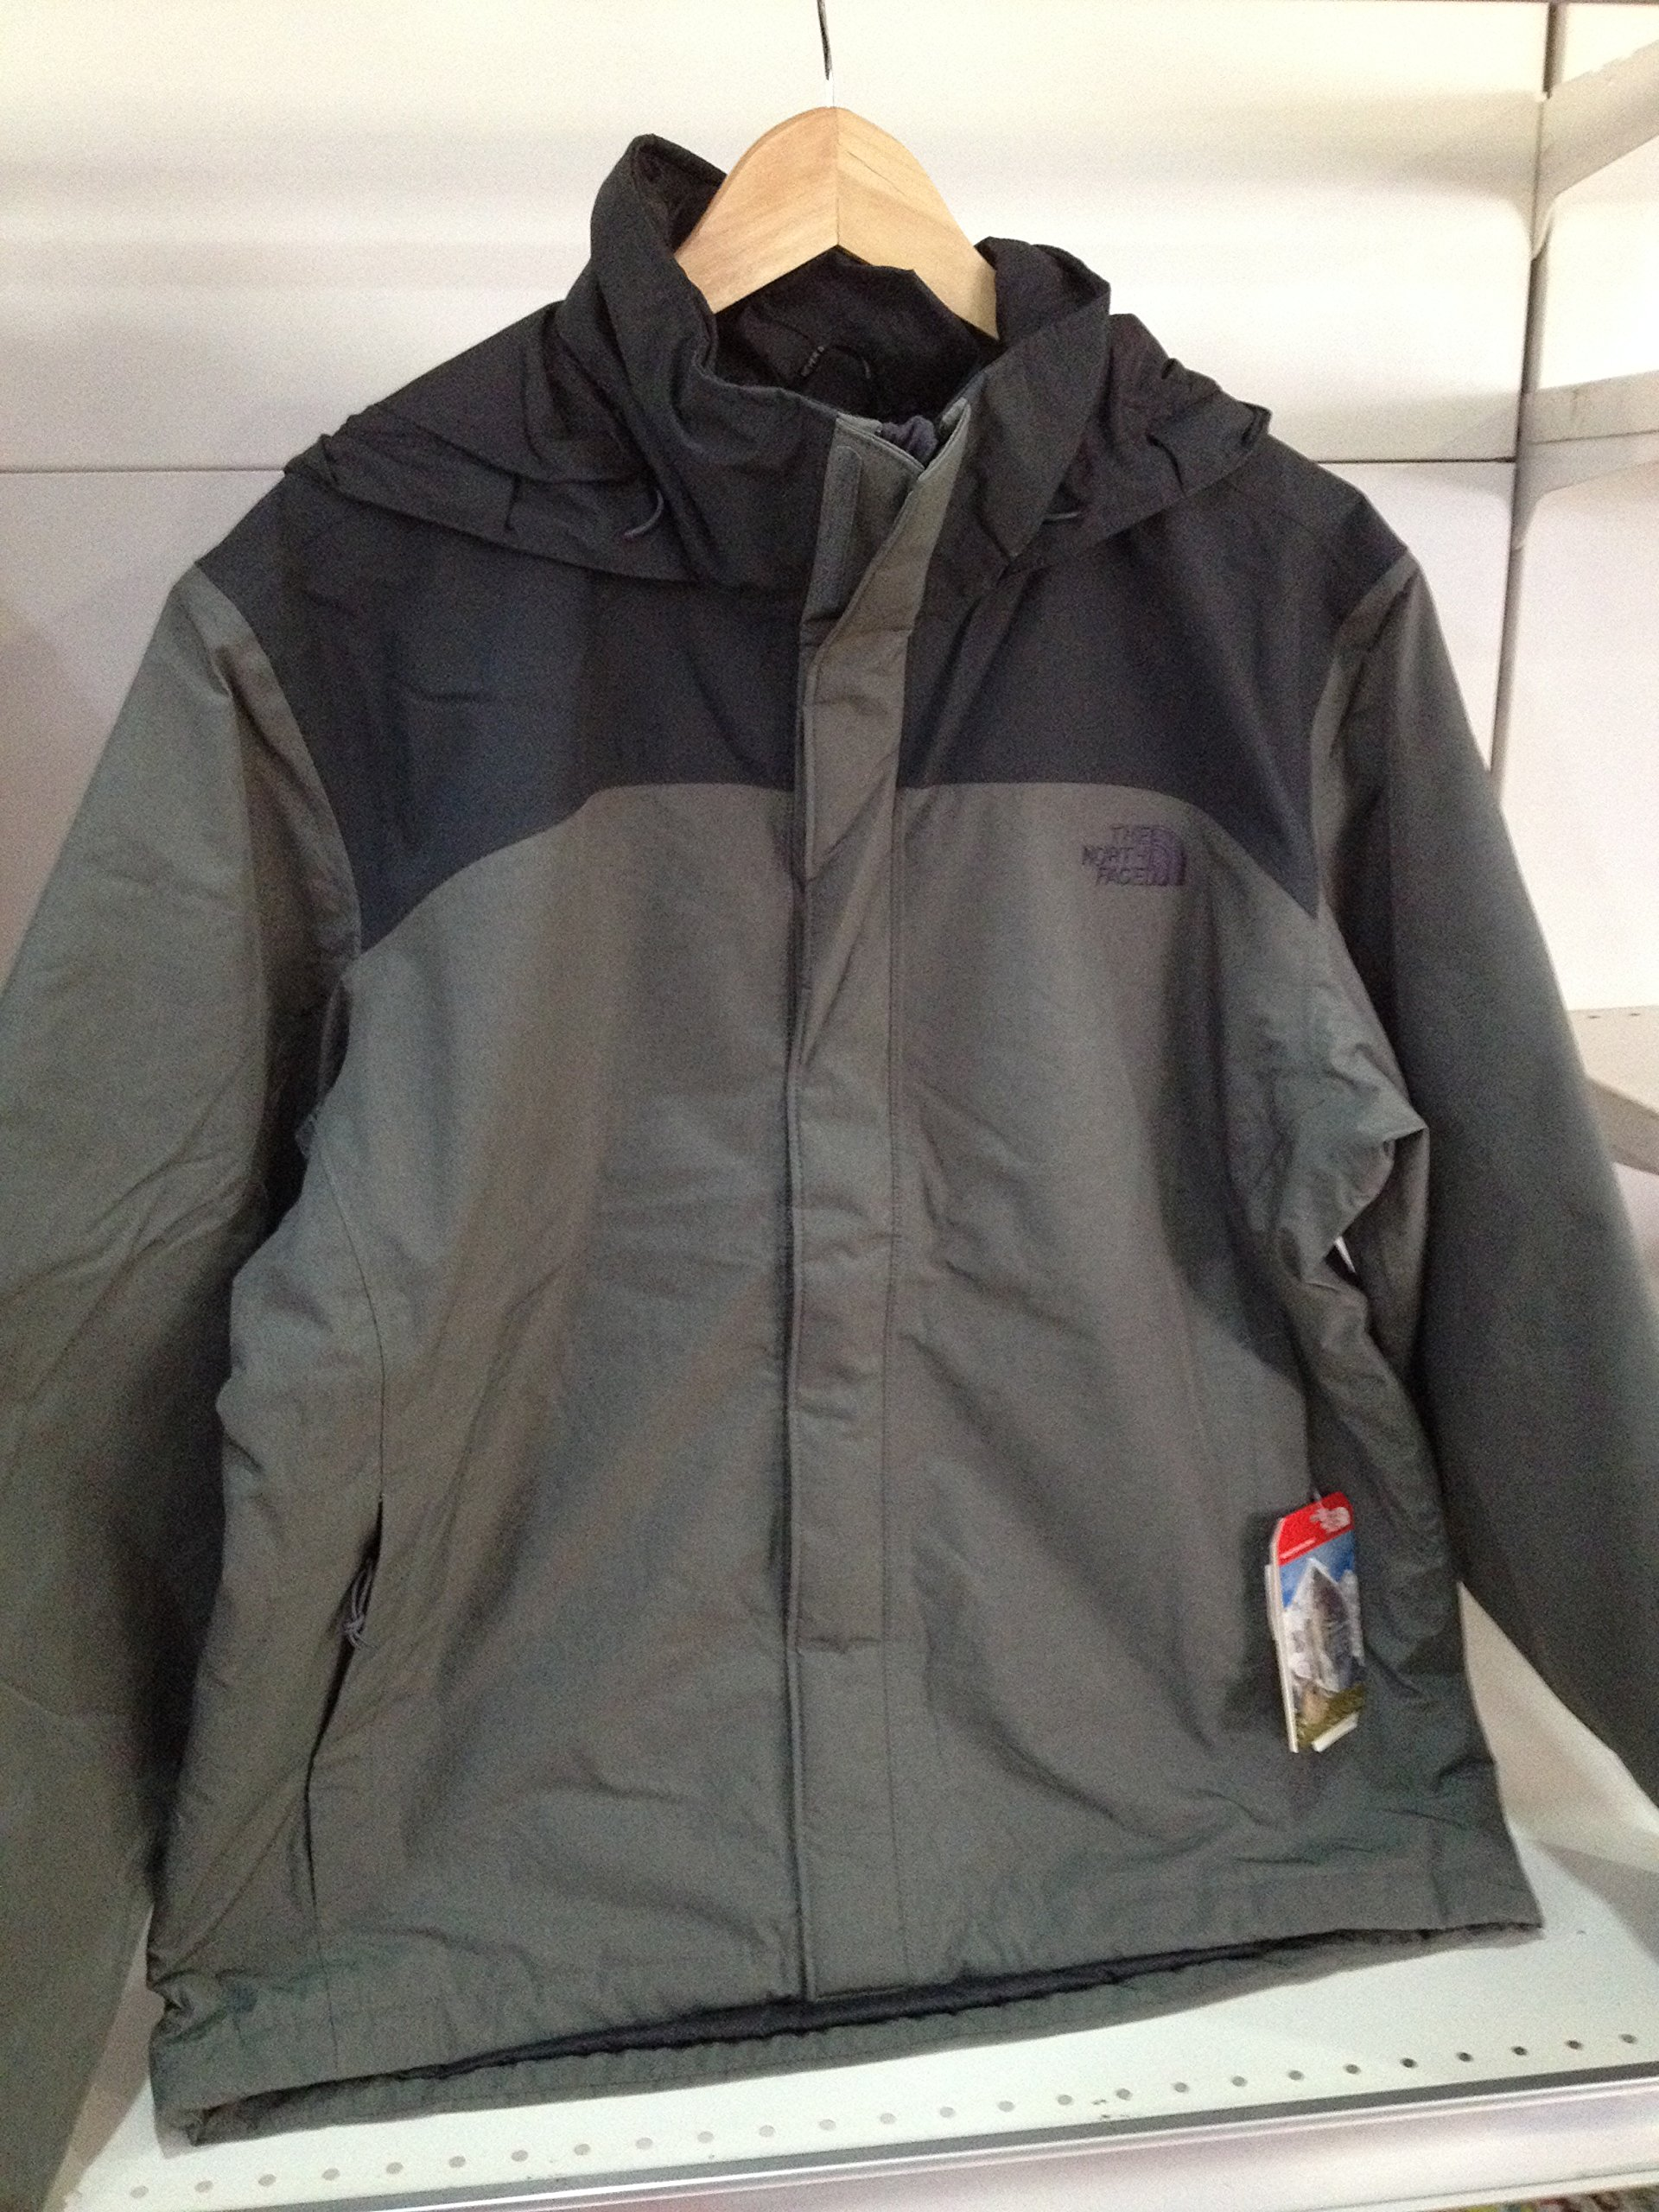 M RESOLVE JACKET L gray by The North Face (Image #1)